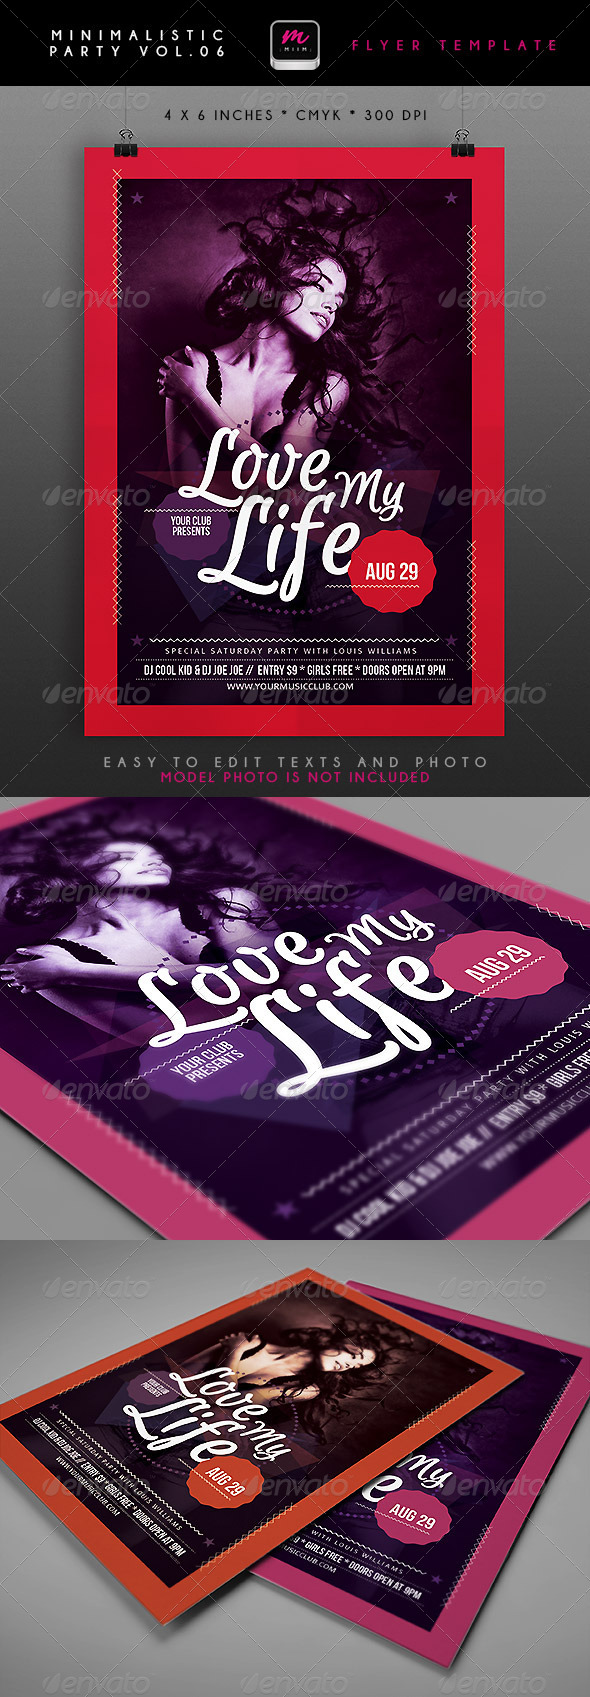 Minimalistic Party Flyer 6 - Clubs & Parties Events